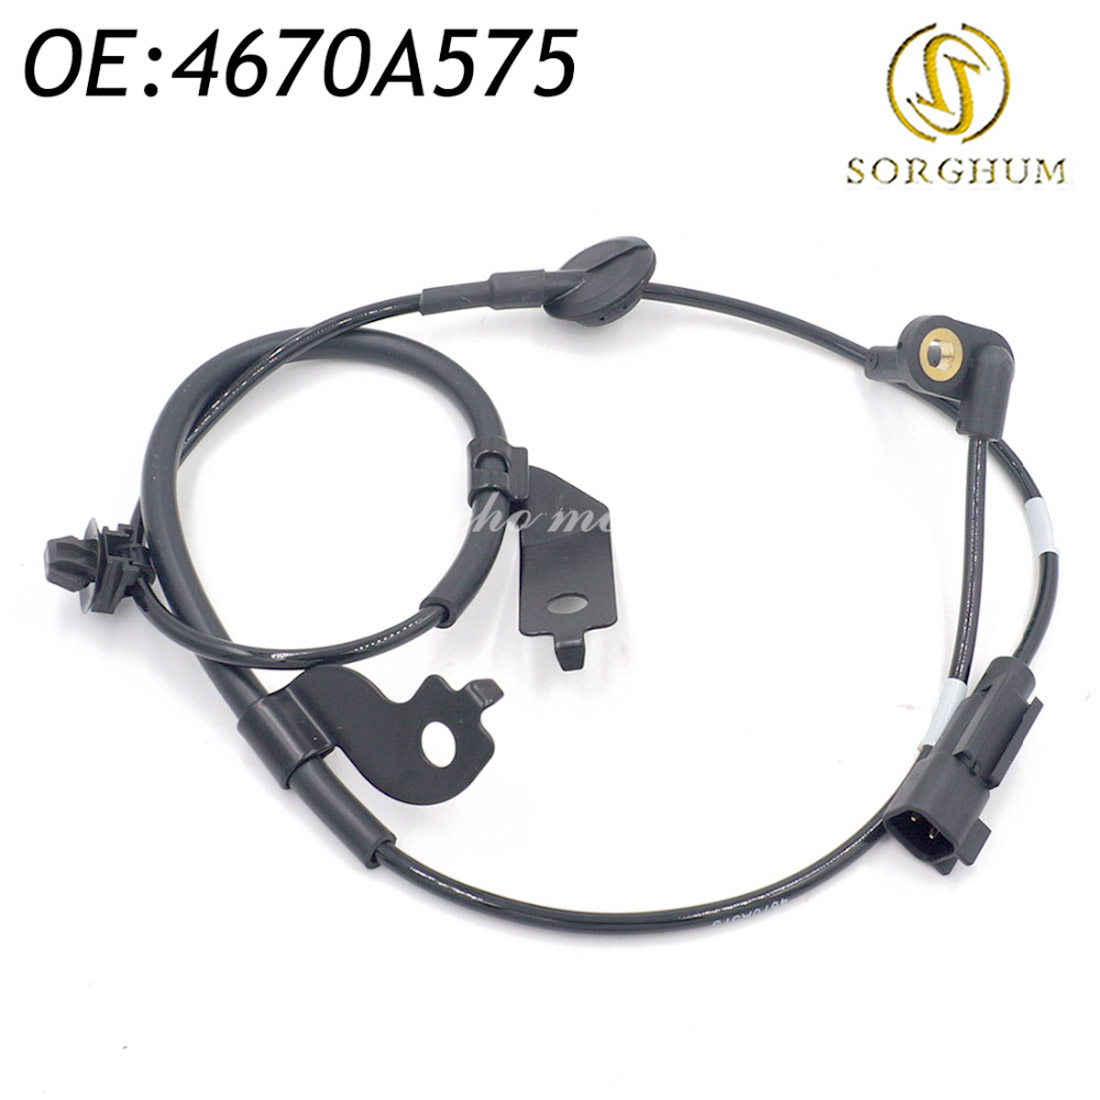 New Rear Left ABS Wheel Speed Sensor for Mitsubishi Outlander 2WD Lancer ASX